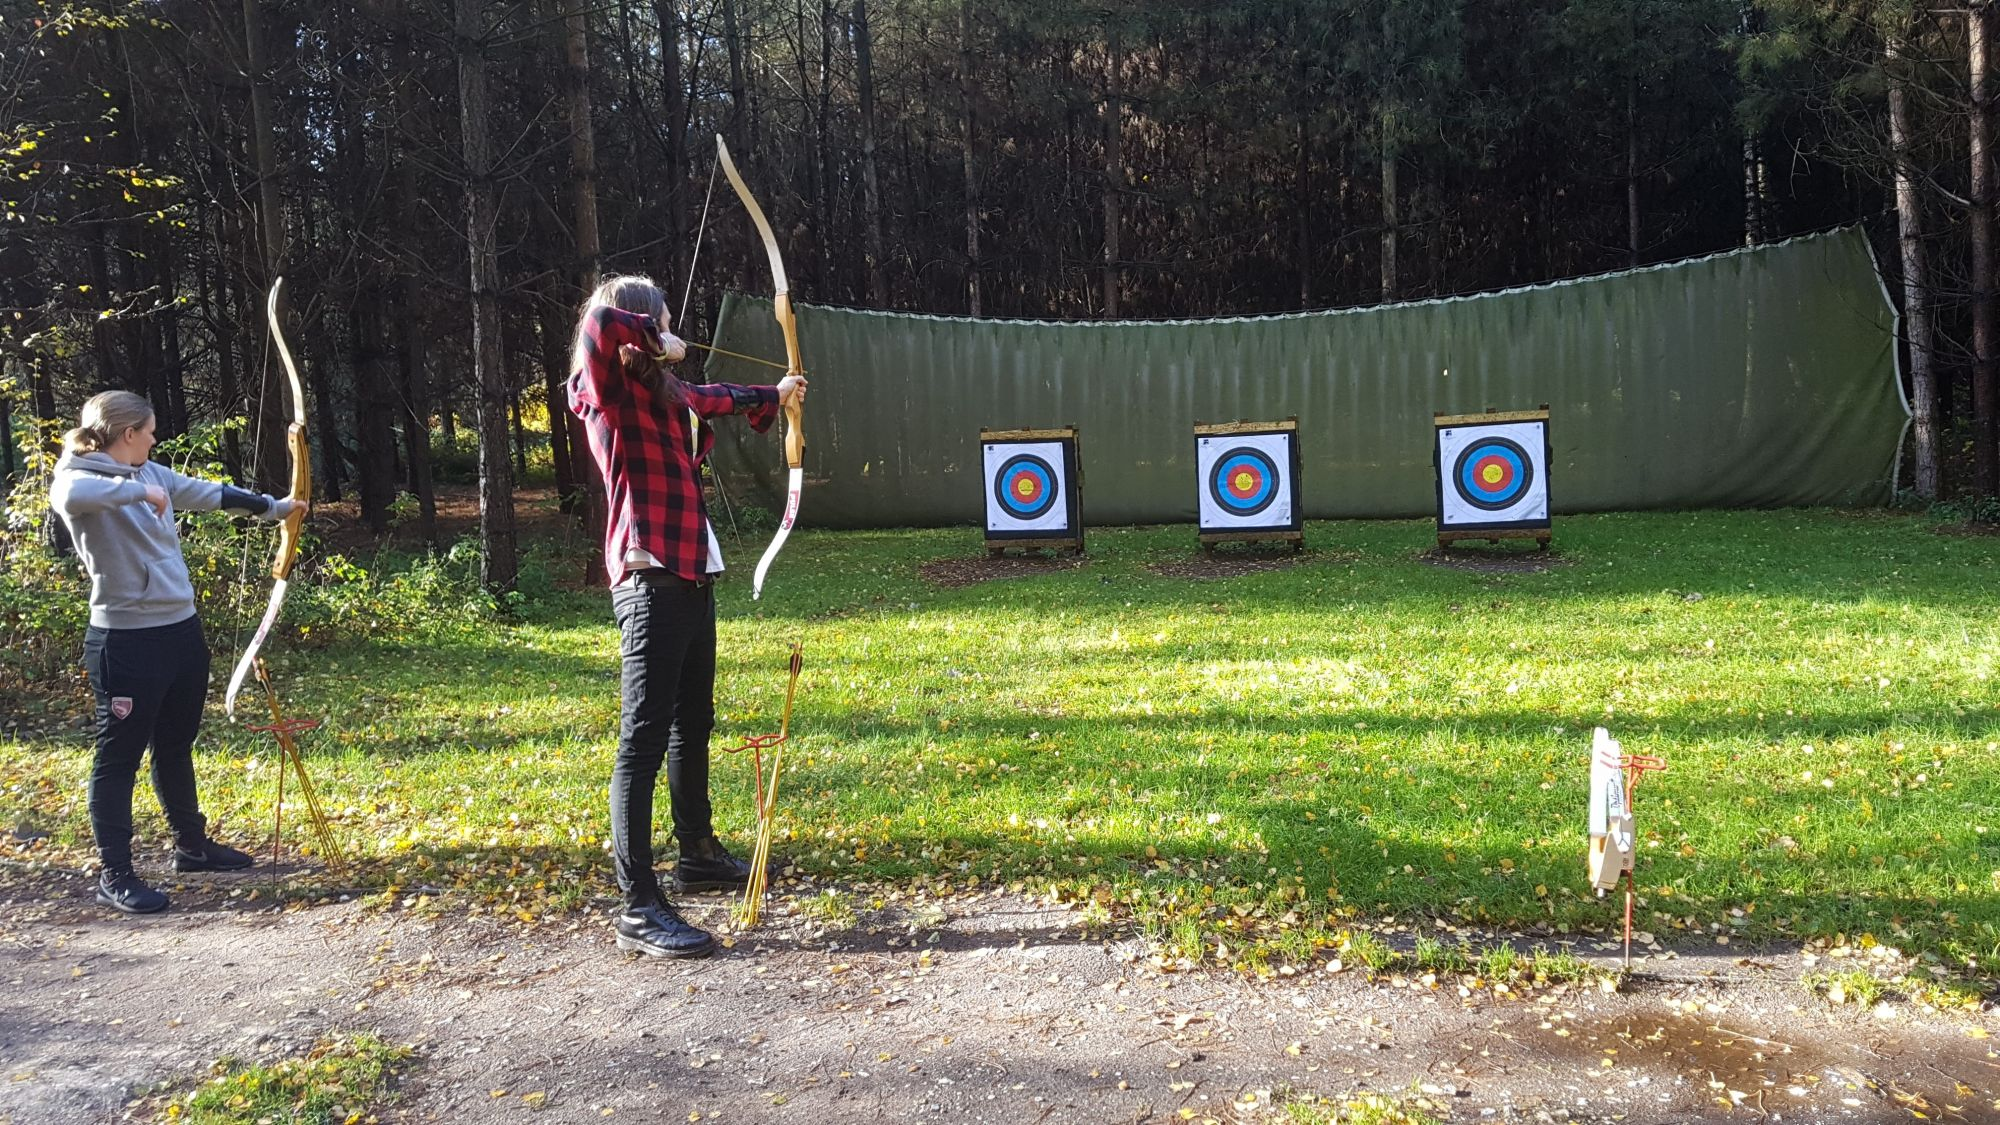 Blog-Forest-archery.jpg